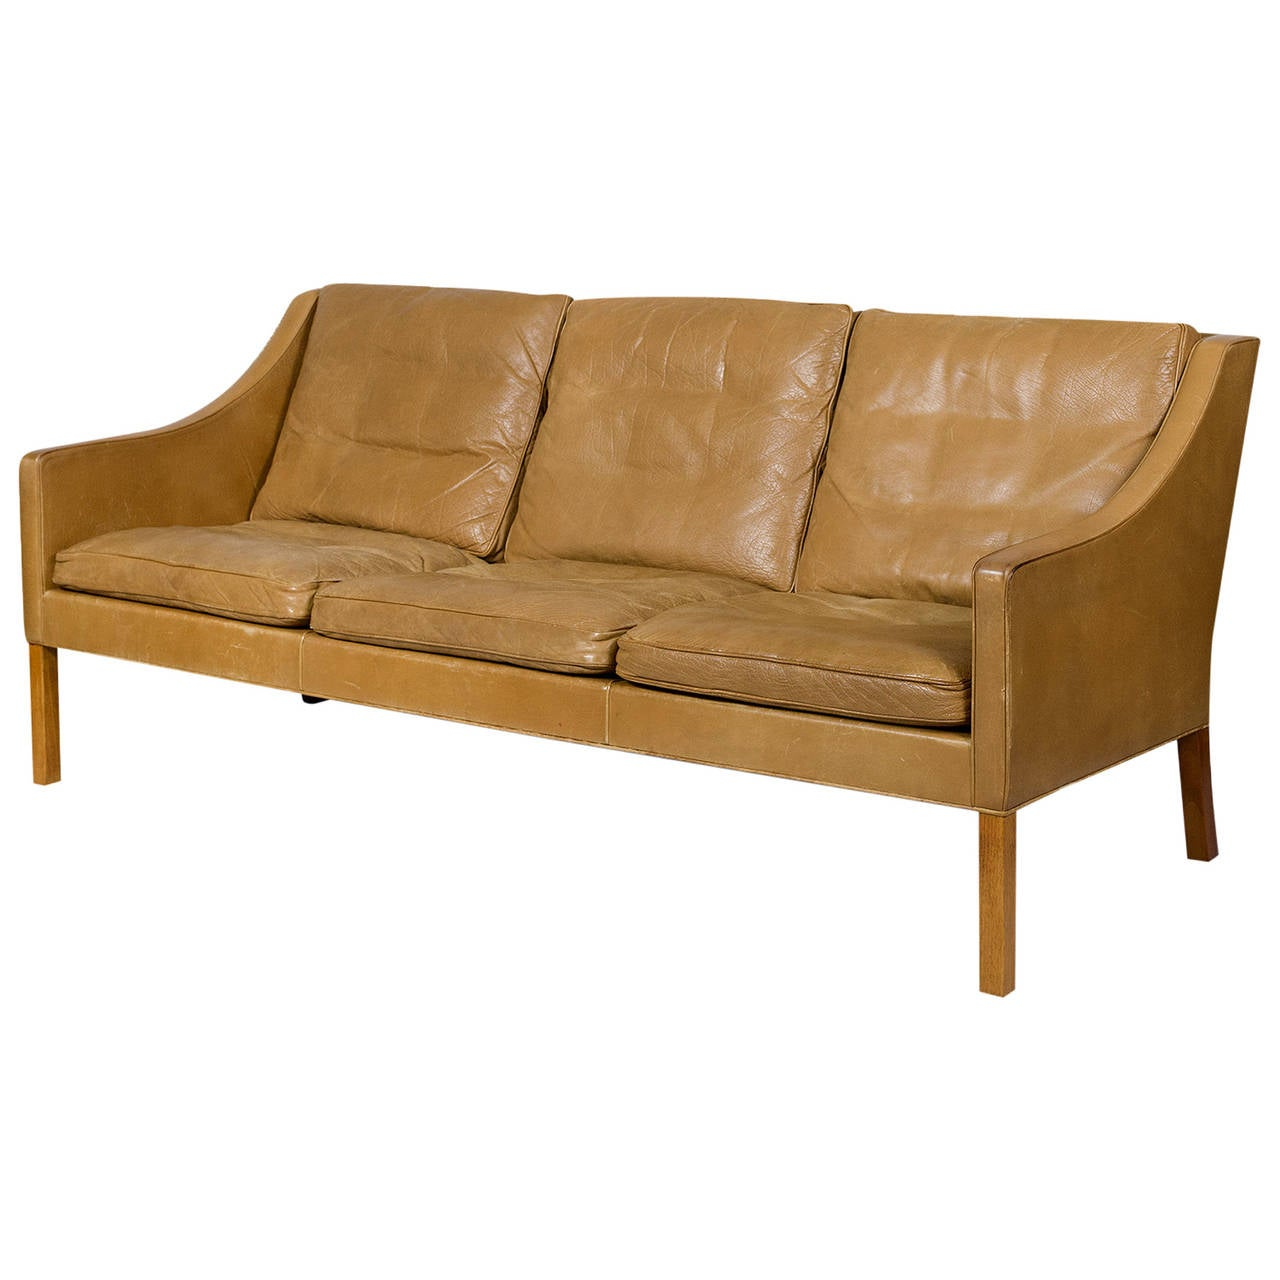 Simplicity sofas for sale - Borge Mogensen Model 2209 Three Seat Leather Sofa 1